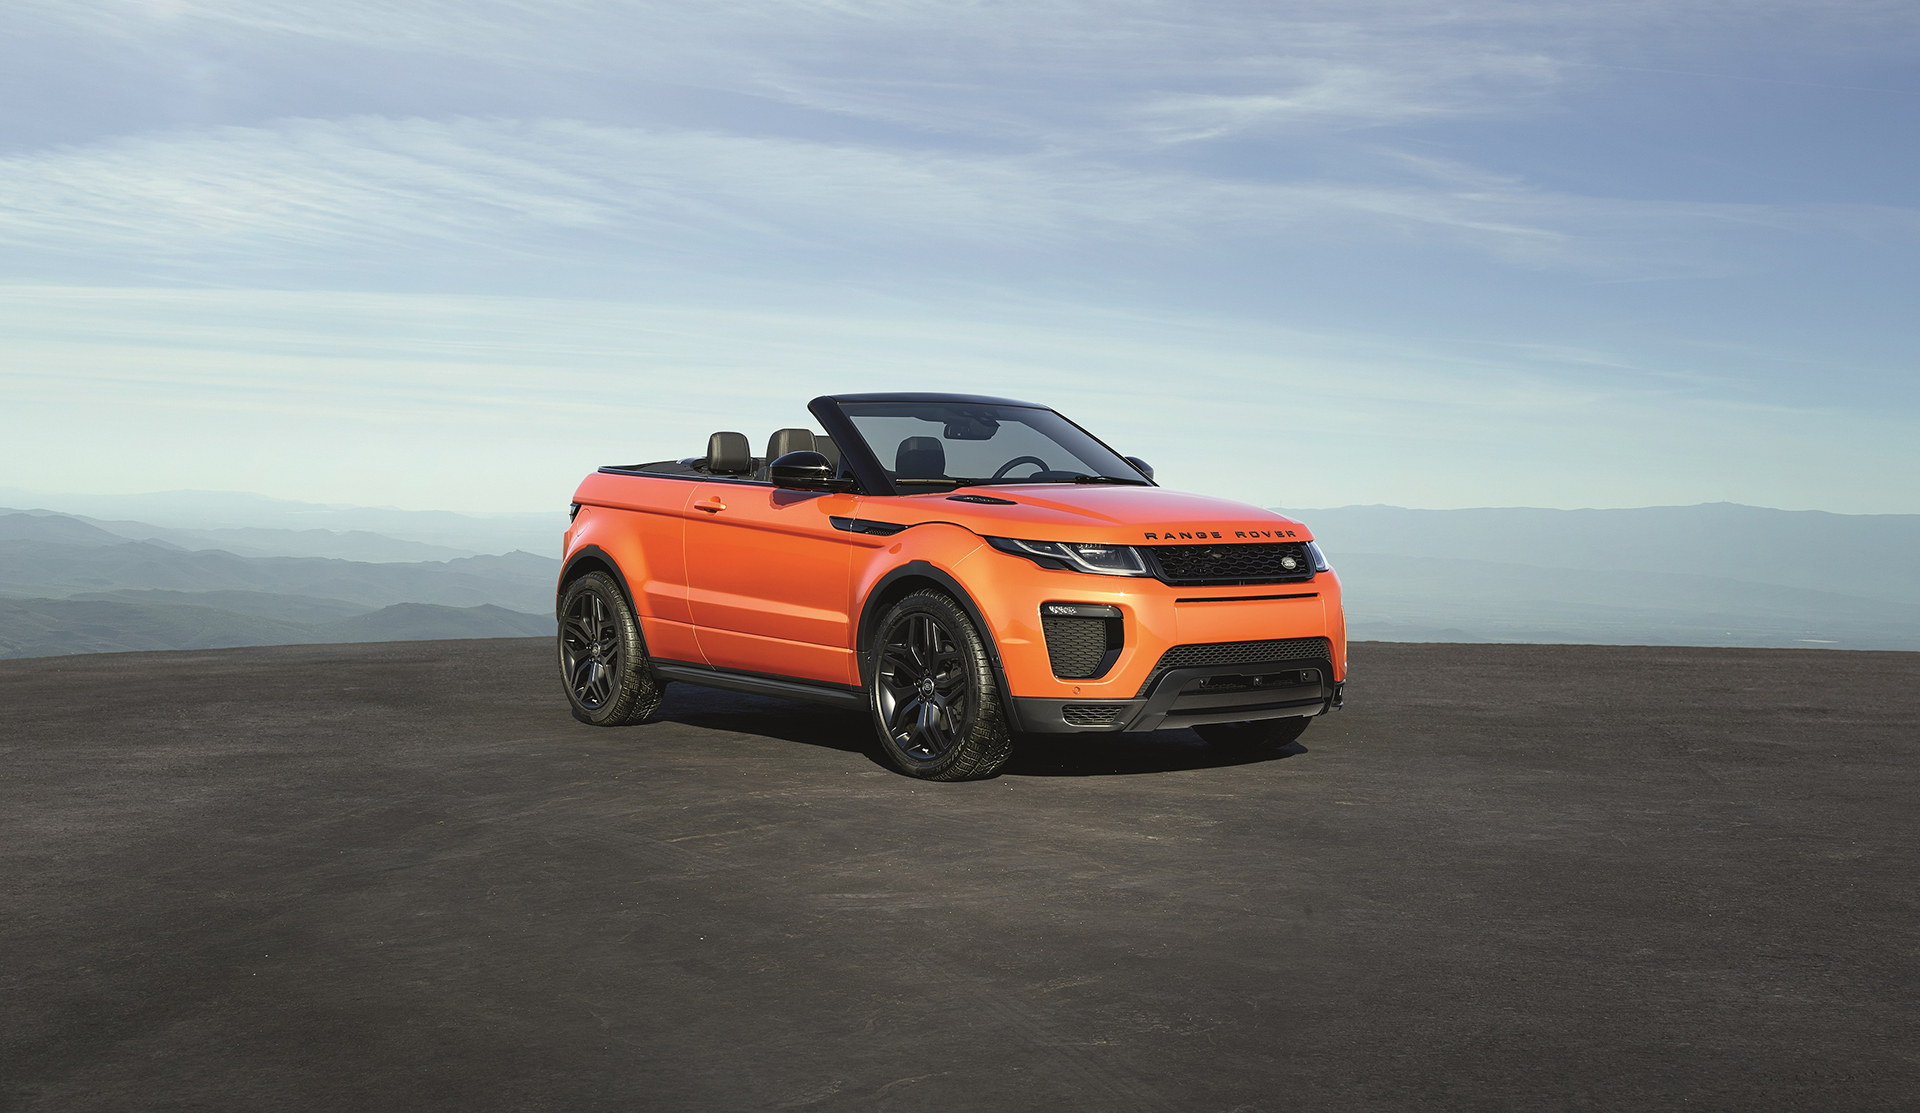 Land Rover Range Rover Evoque Convertible - profil avant / front side-face - top open / toit ouvert